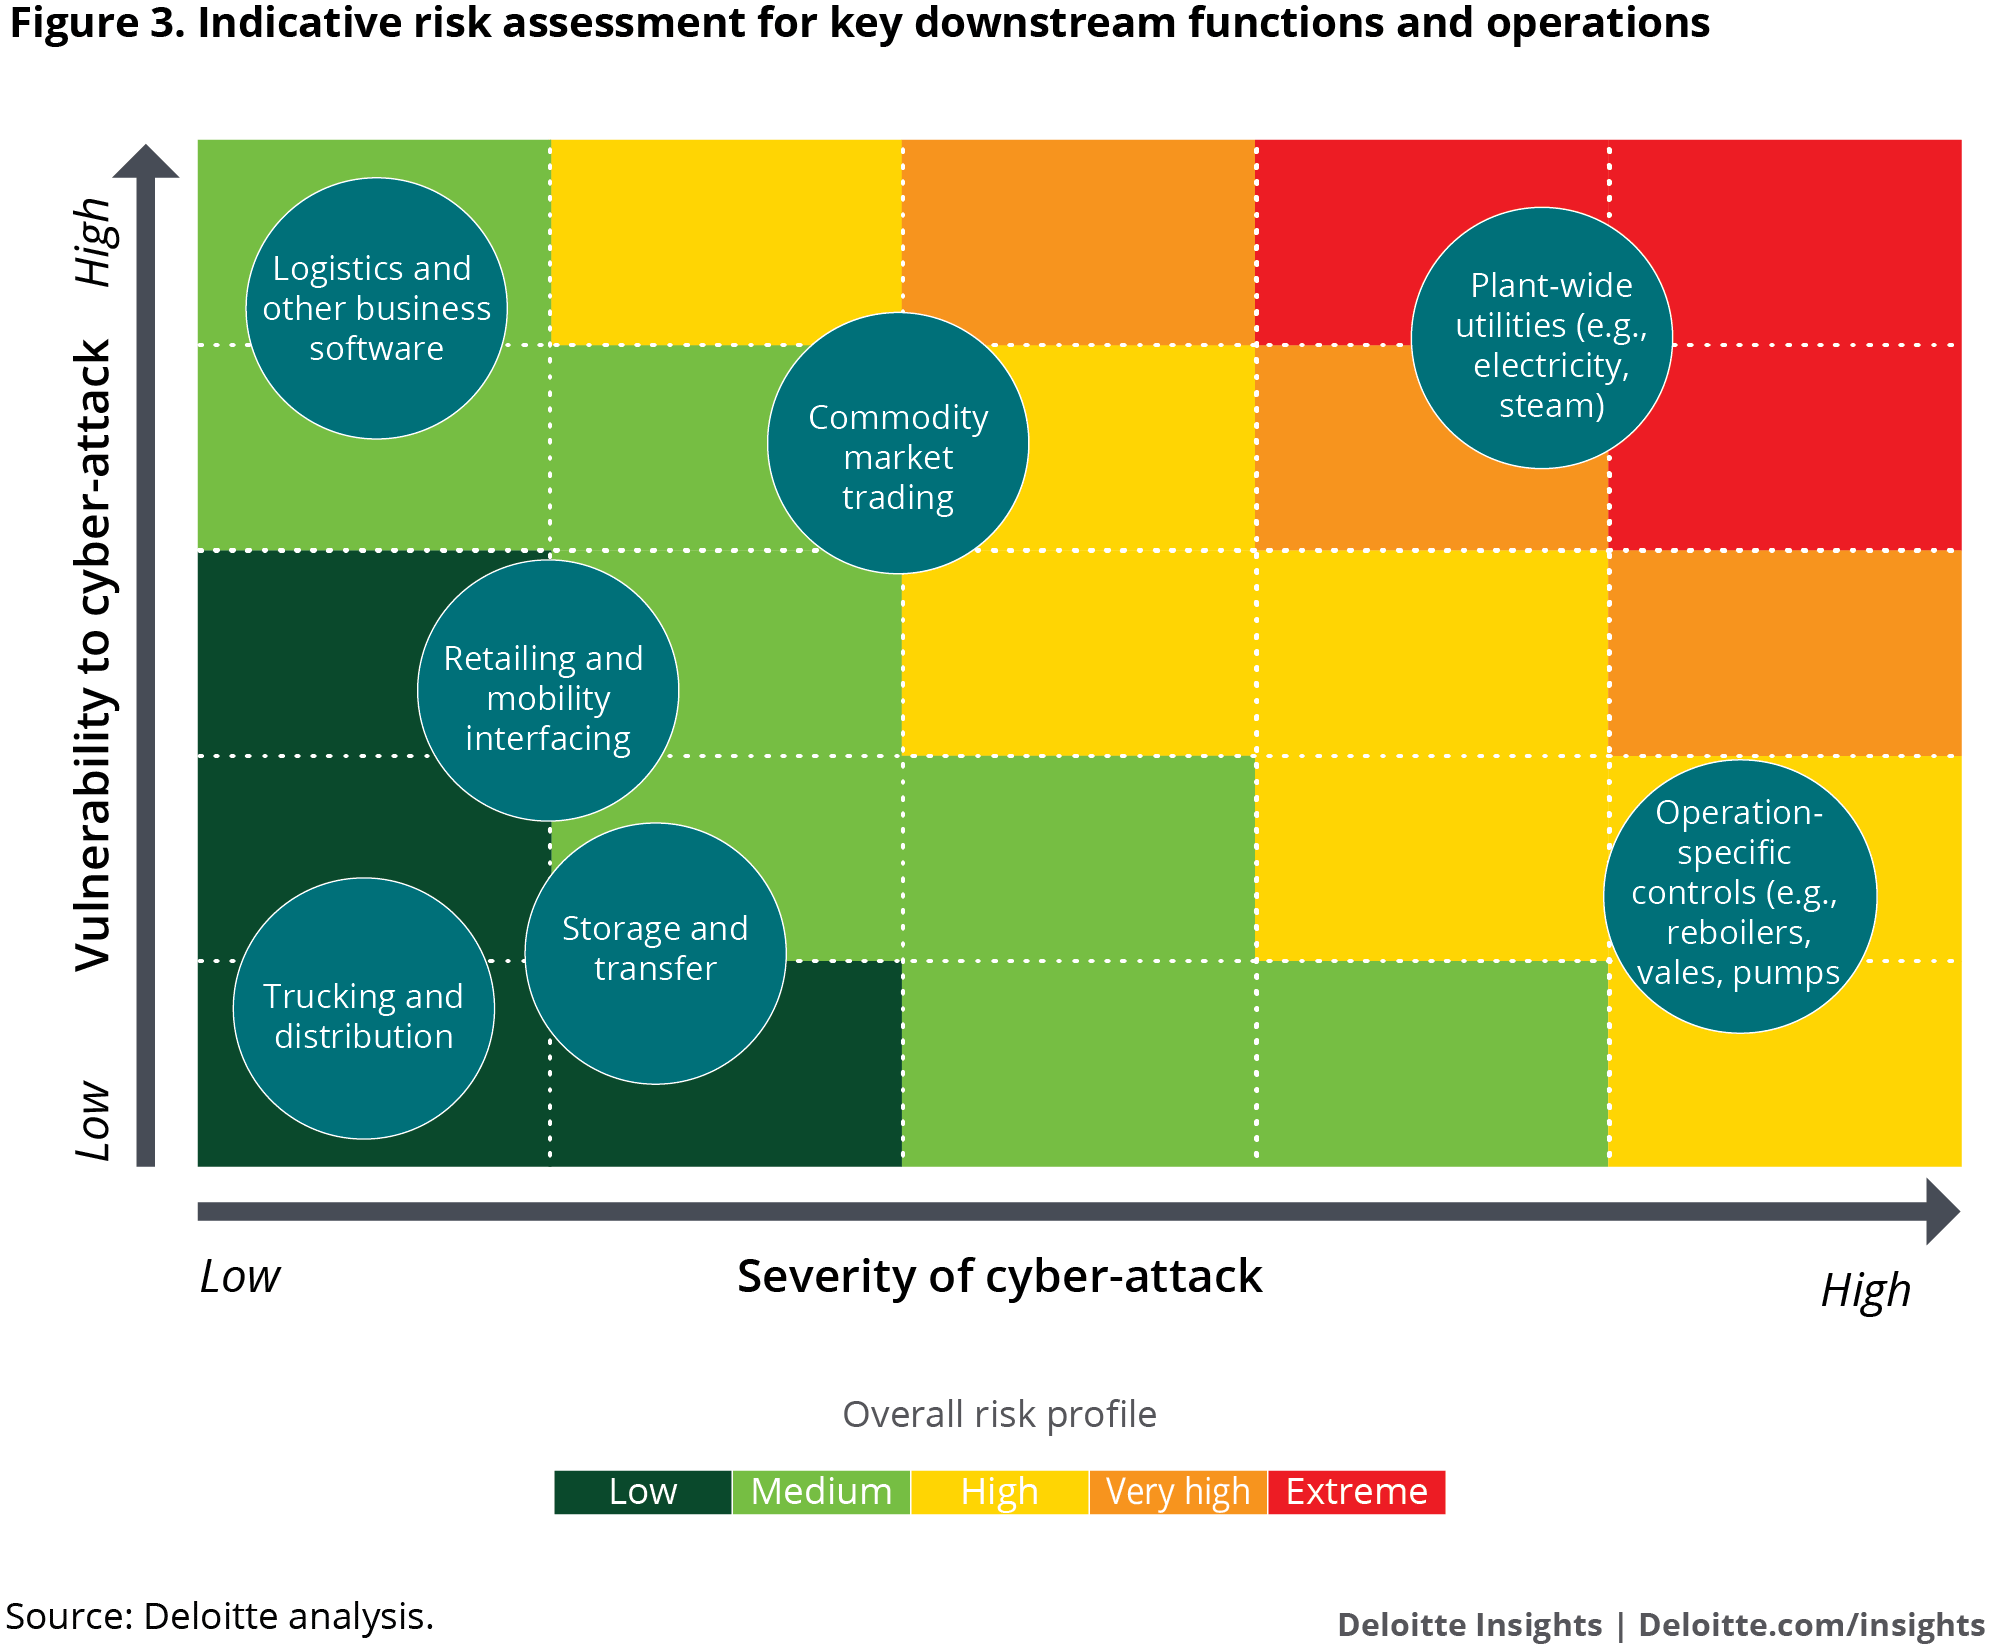 Figure 3. Indicative risk assessment for key downstream functions and operations